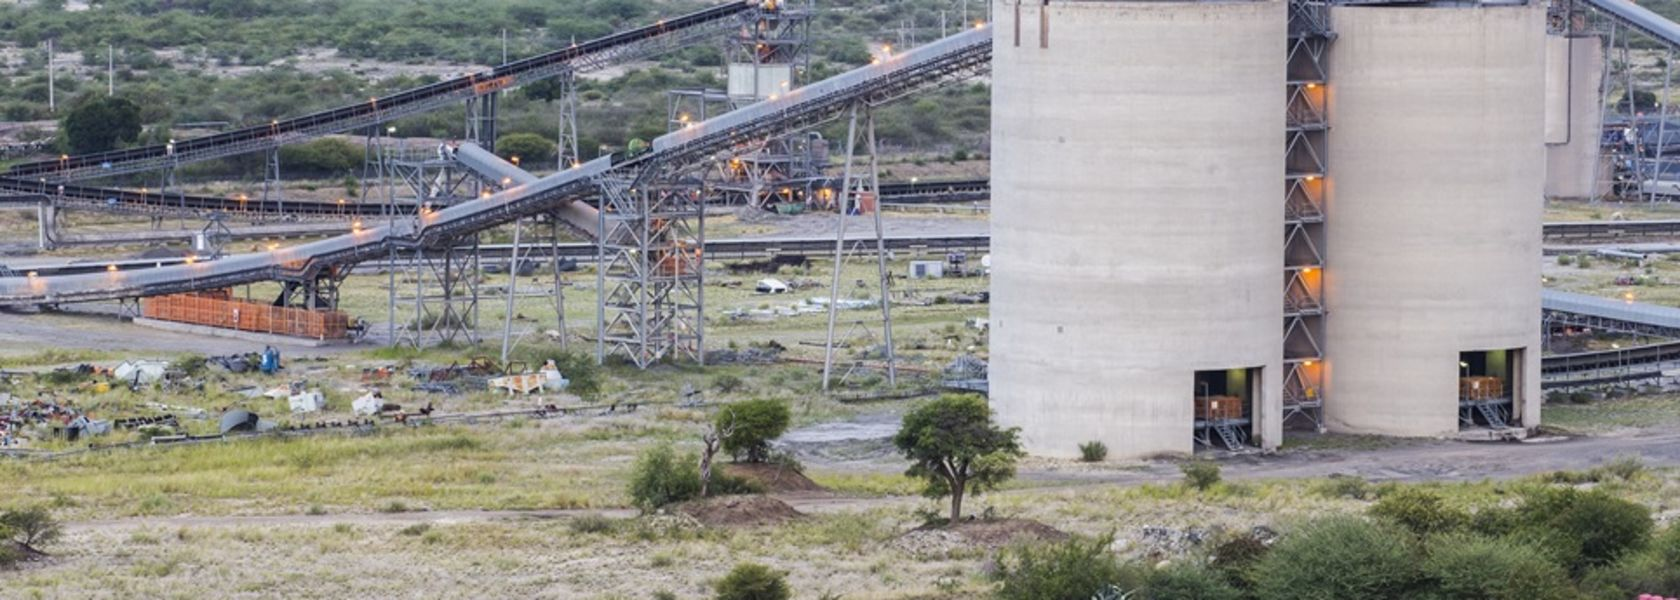 Implats suspends Marula due to COVID-19 cluster